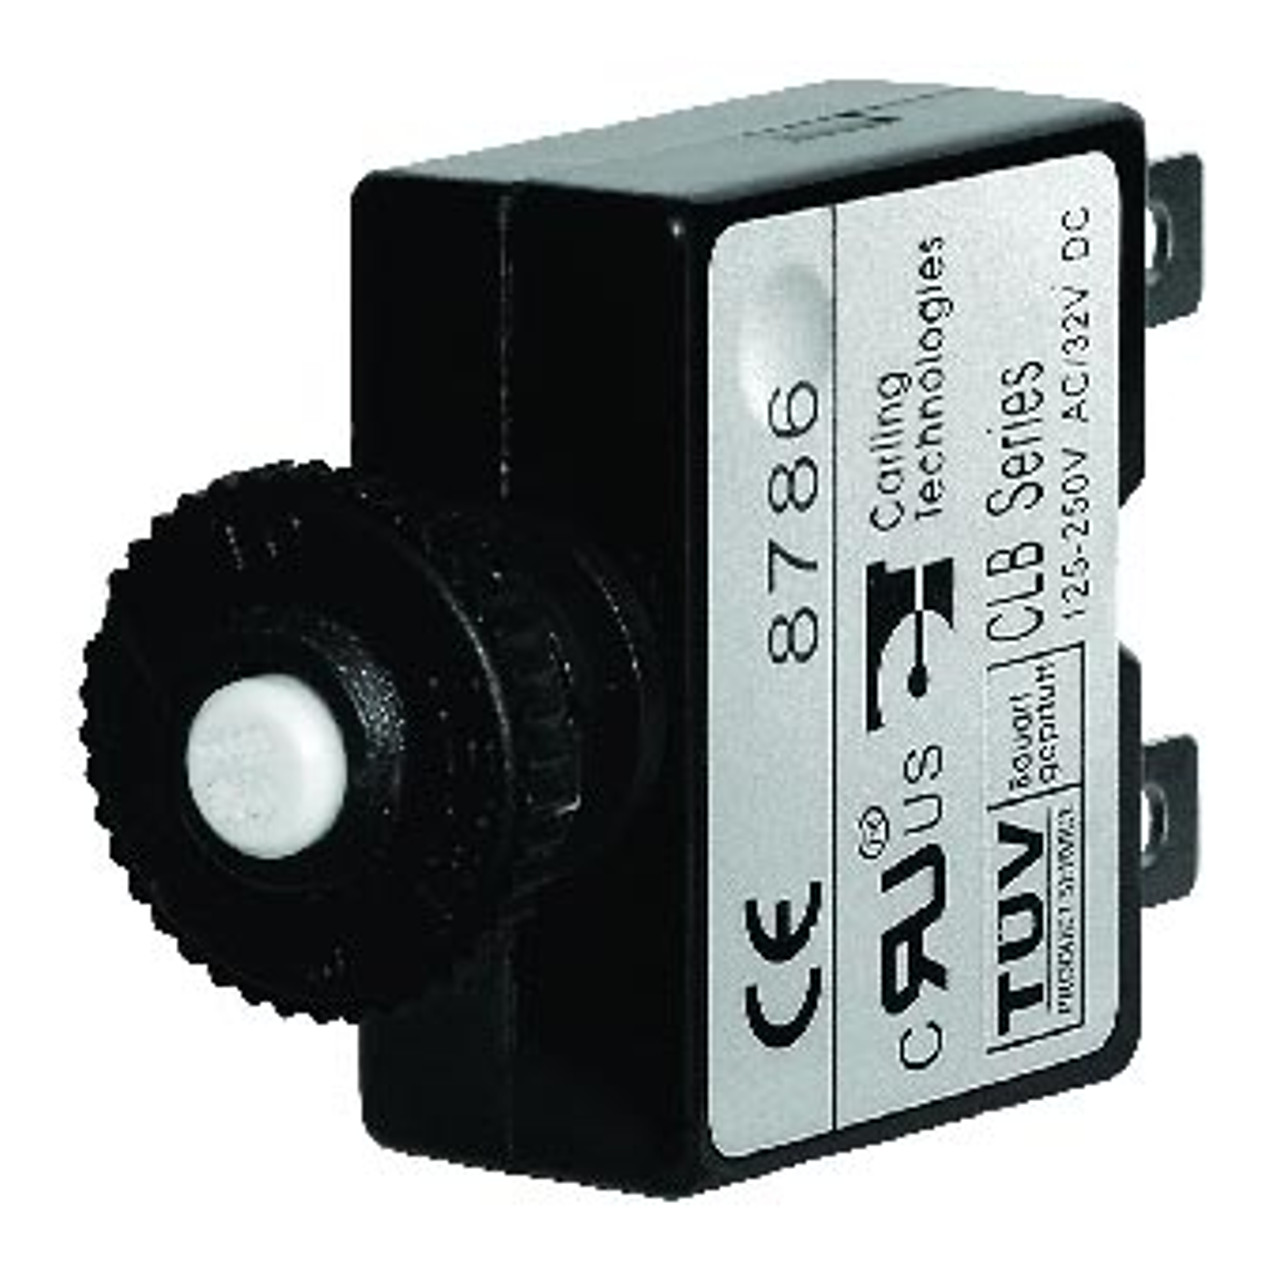 CIRCUIT BREAKER 25 AMP PUSH BUTTON QUICK CONNECT